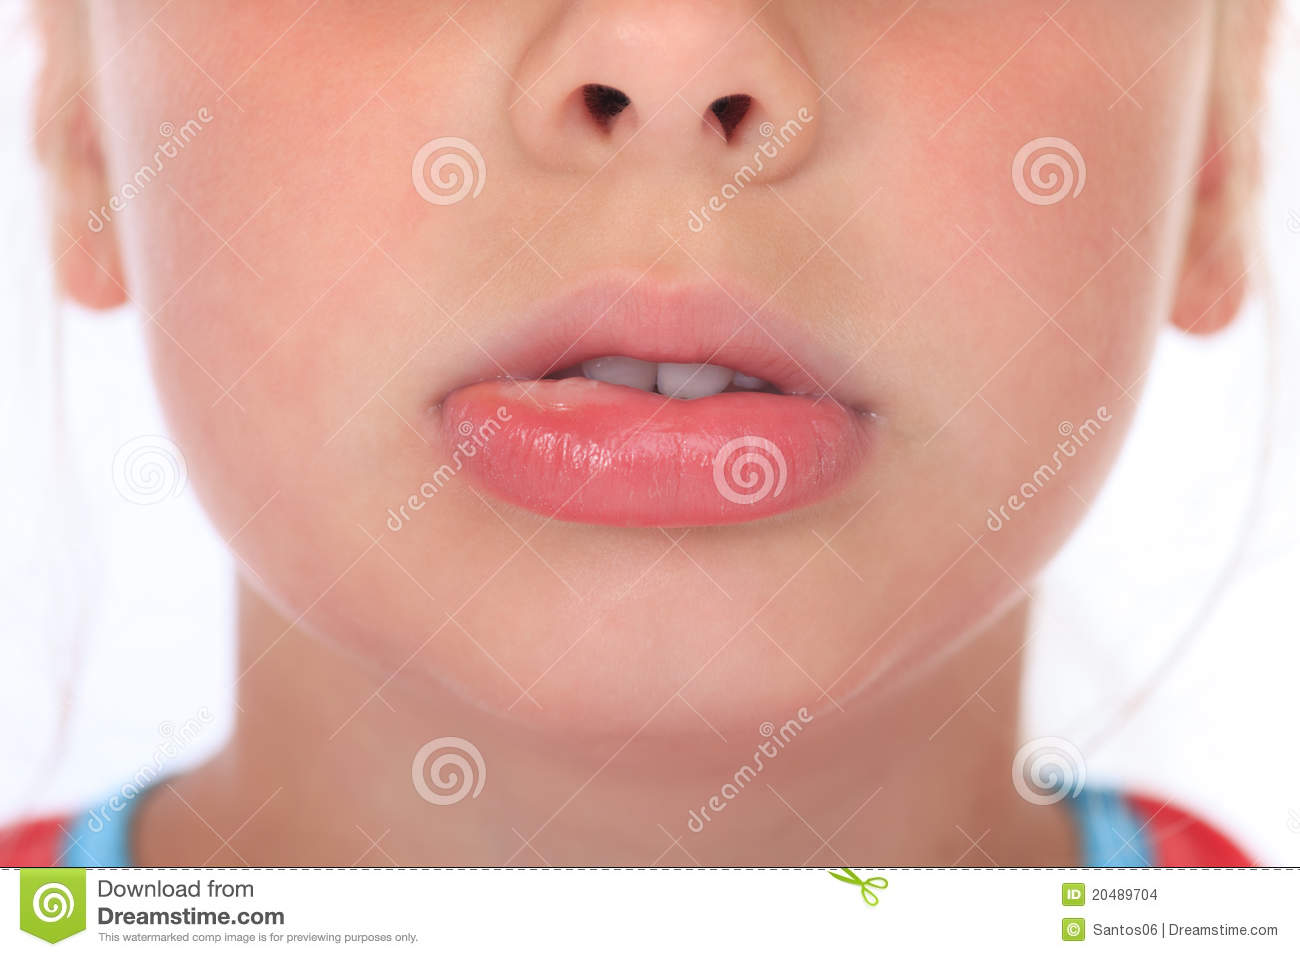 Swollen lip after wasp sting